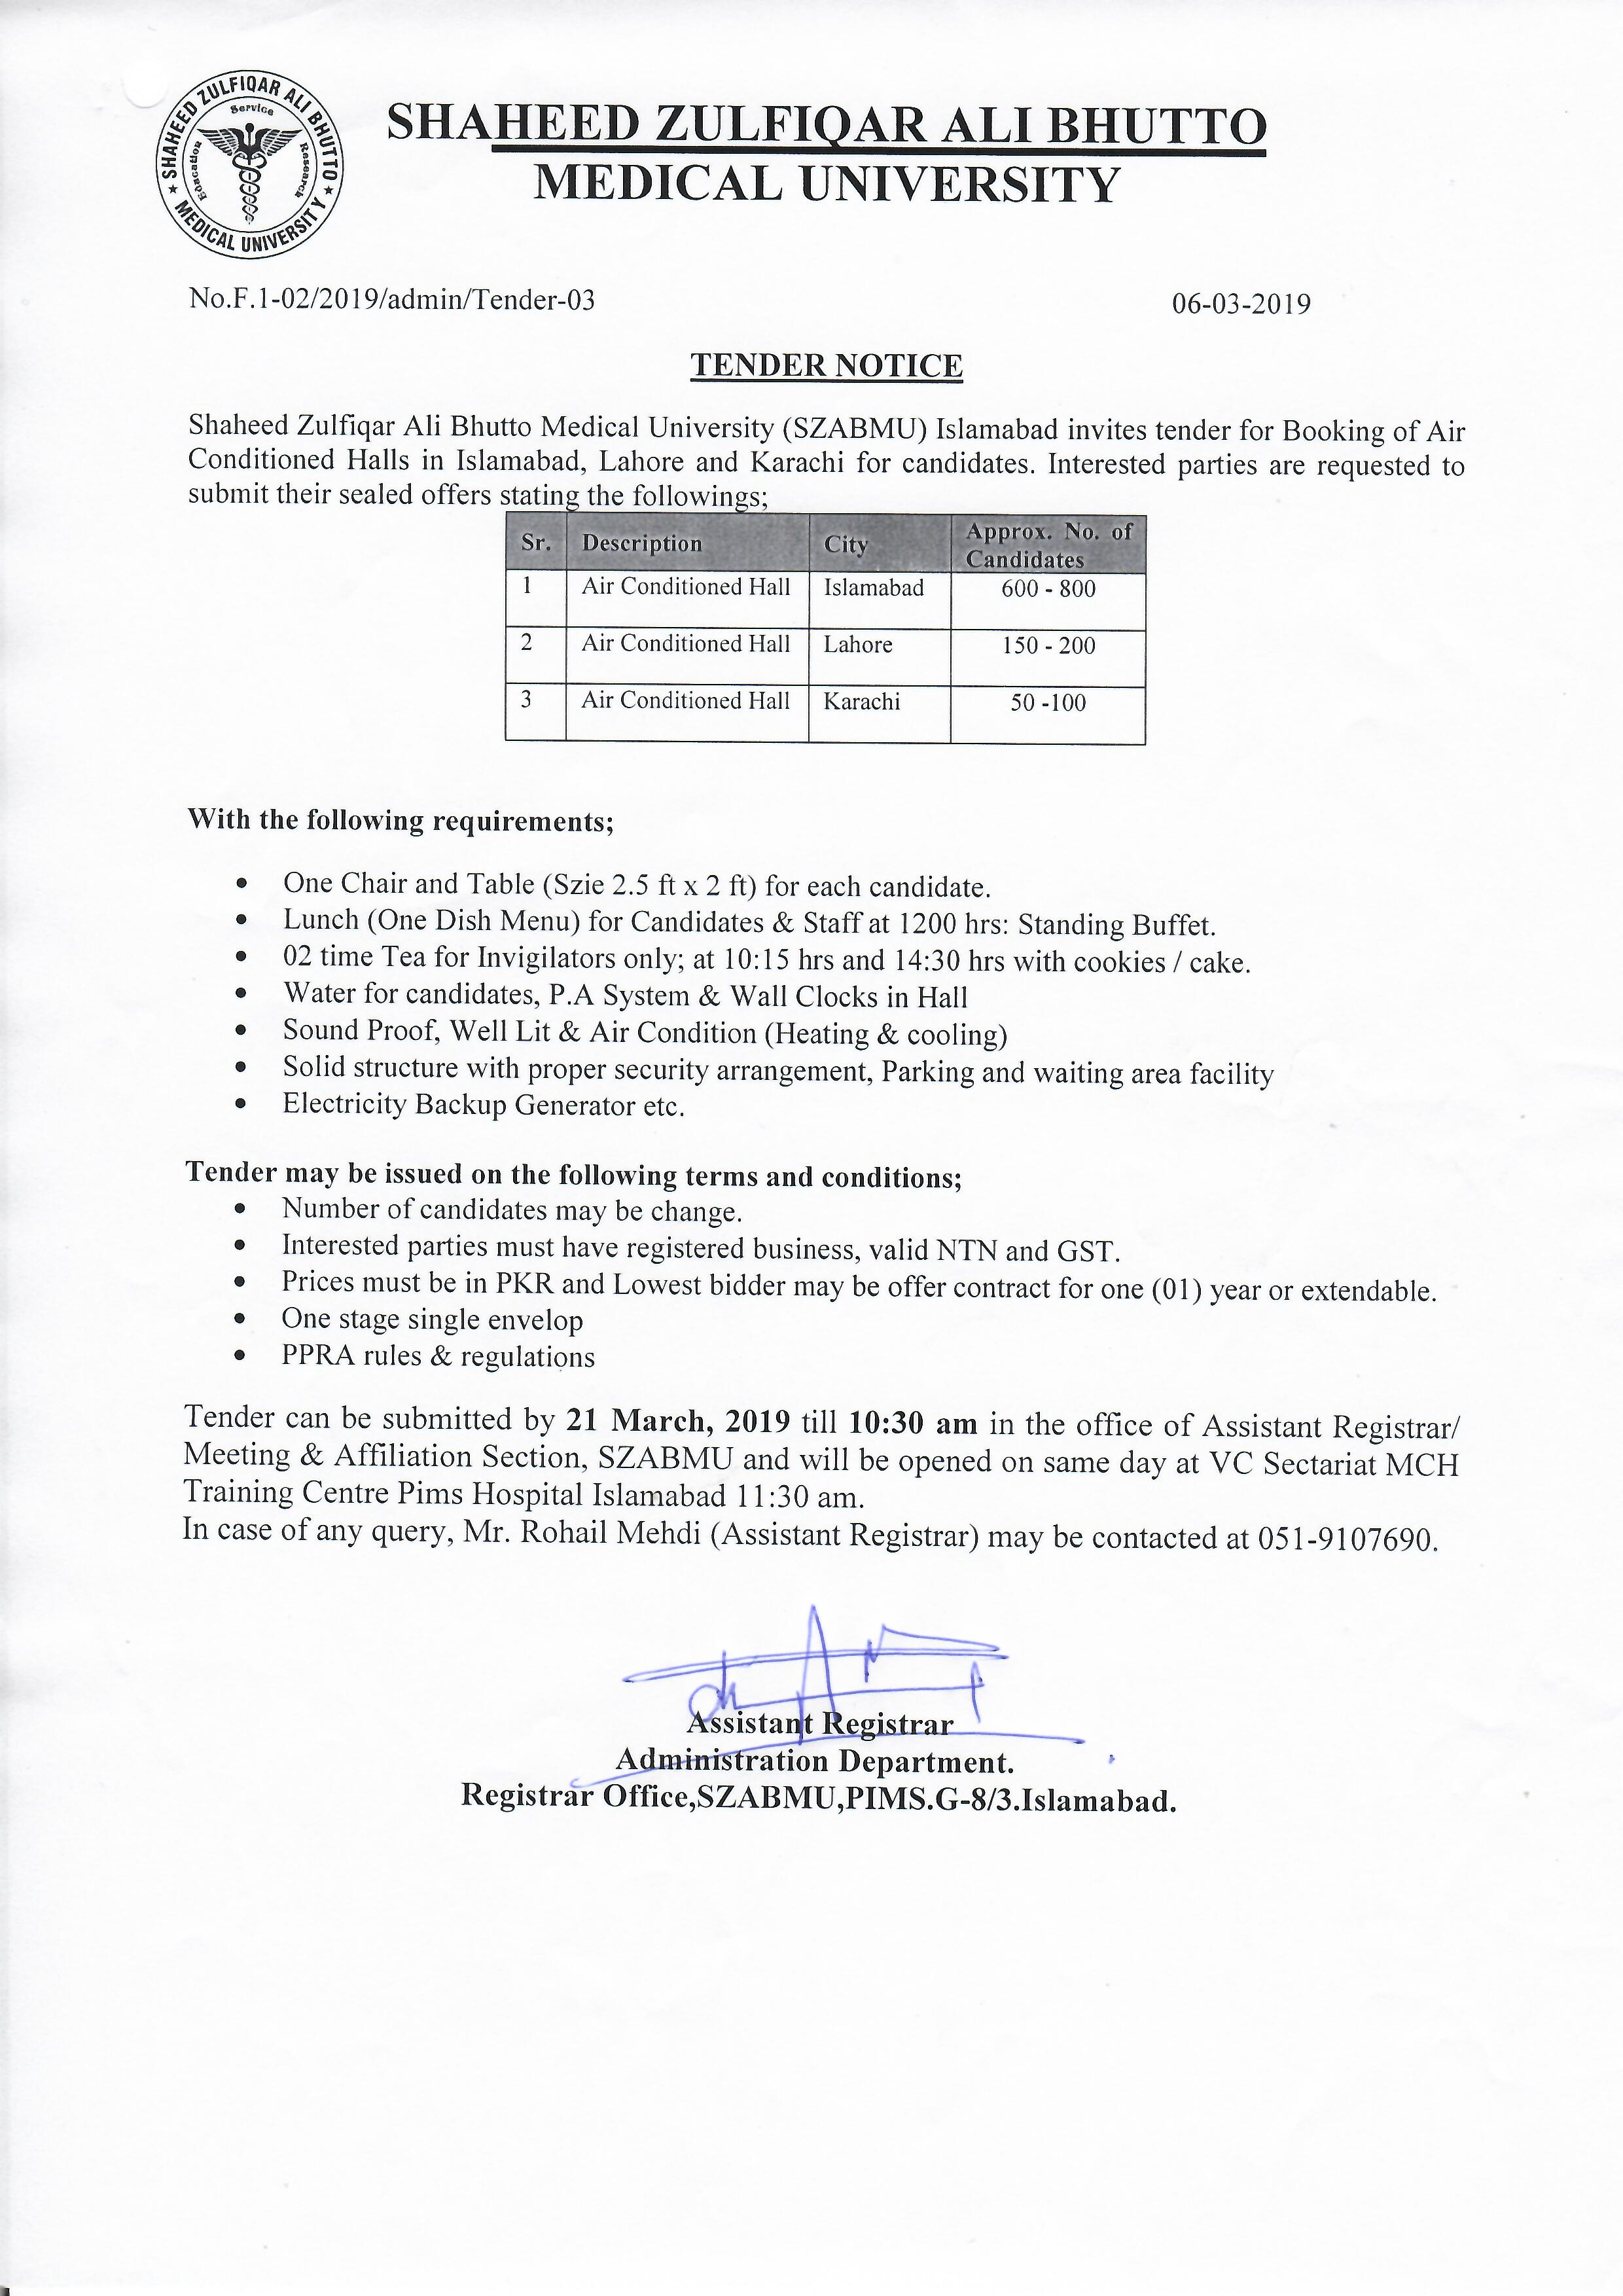 Tender Notice for Booking of Air Conditioned Halls